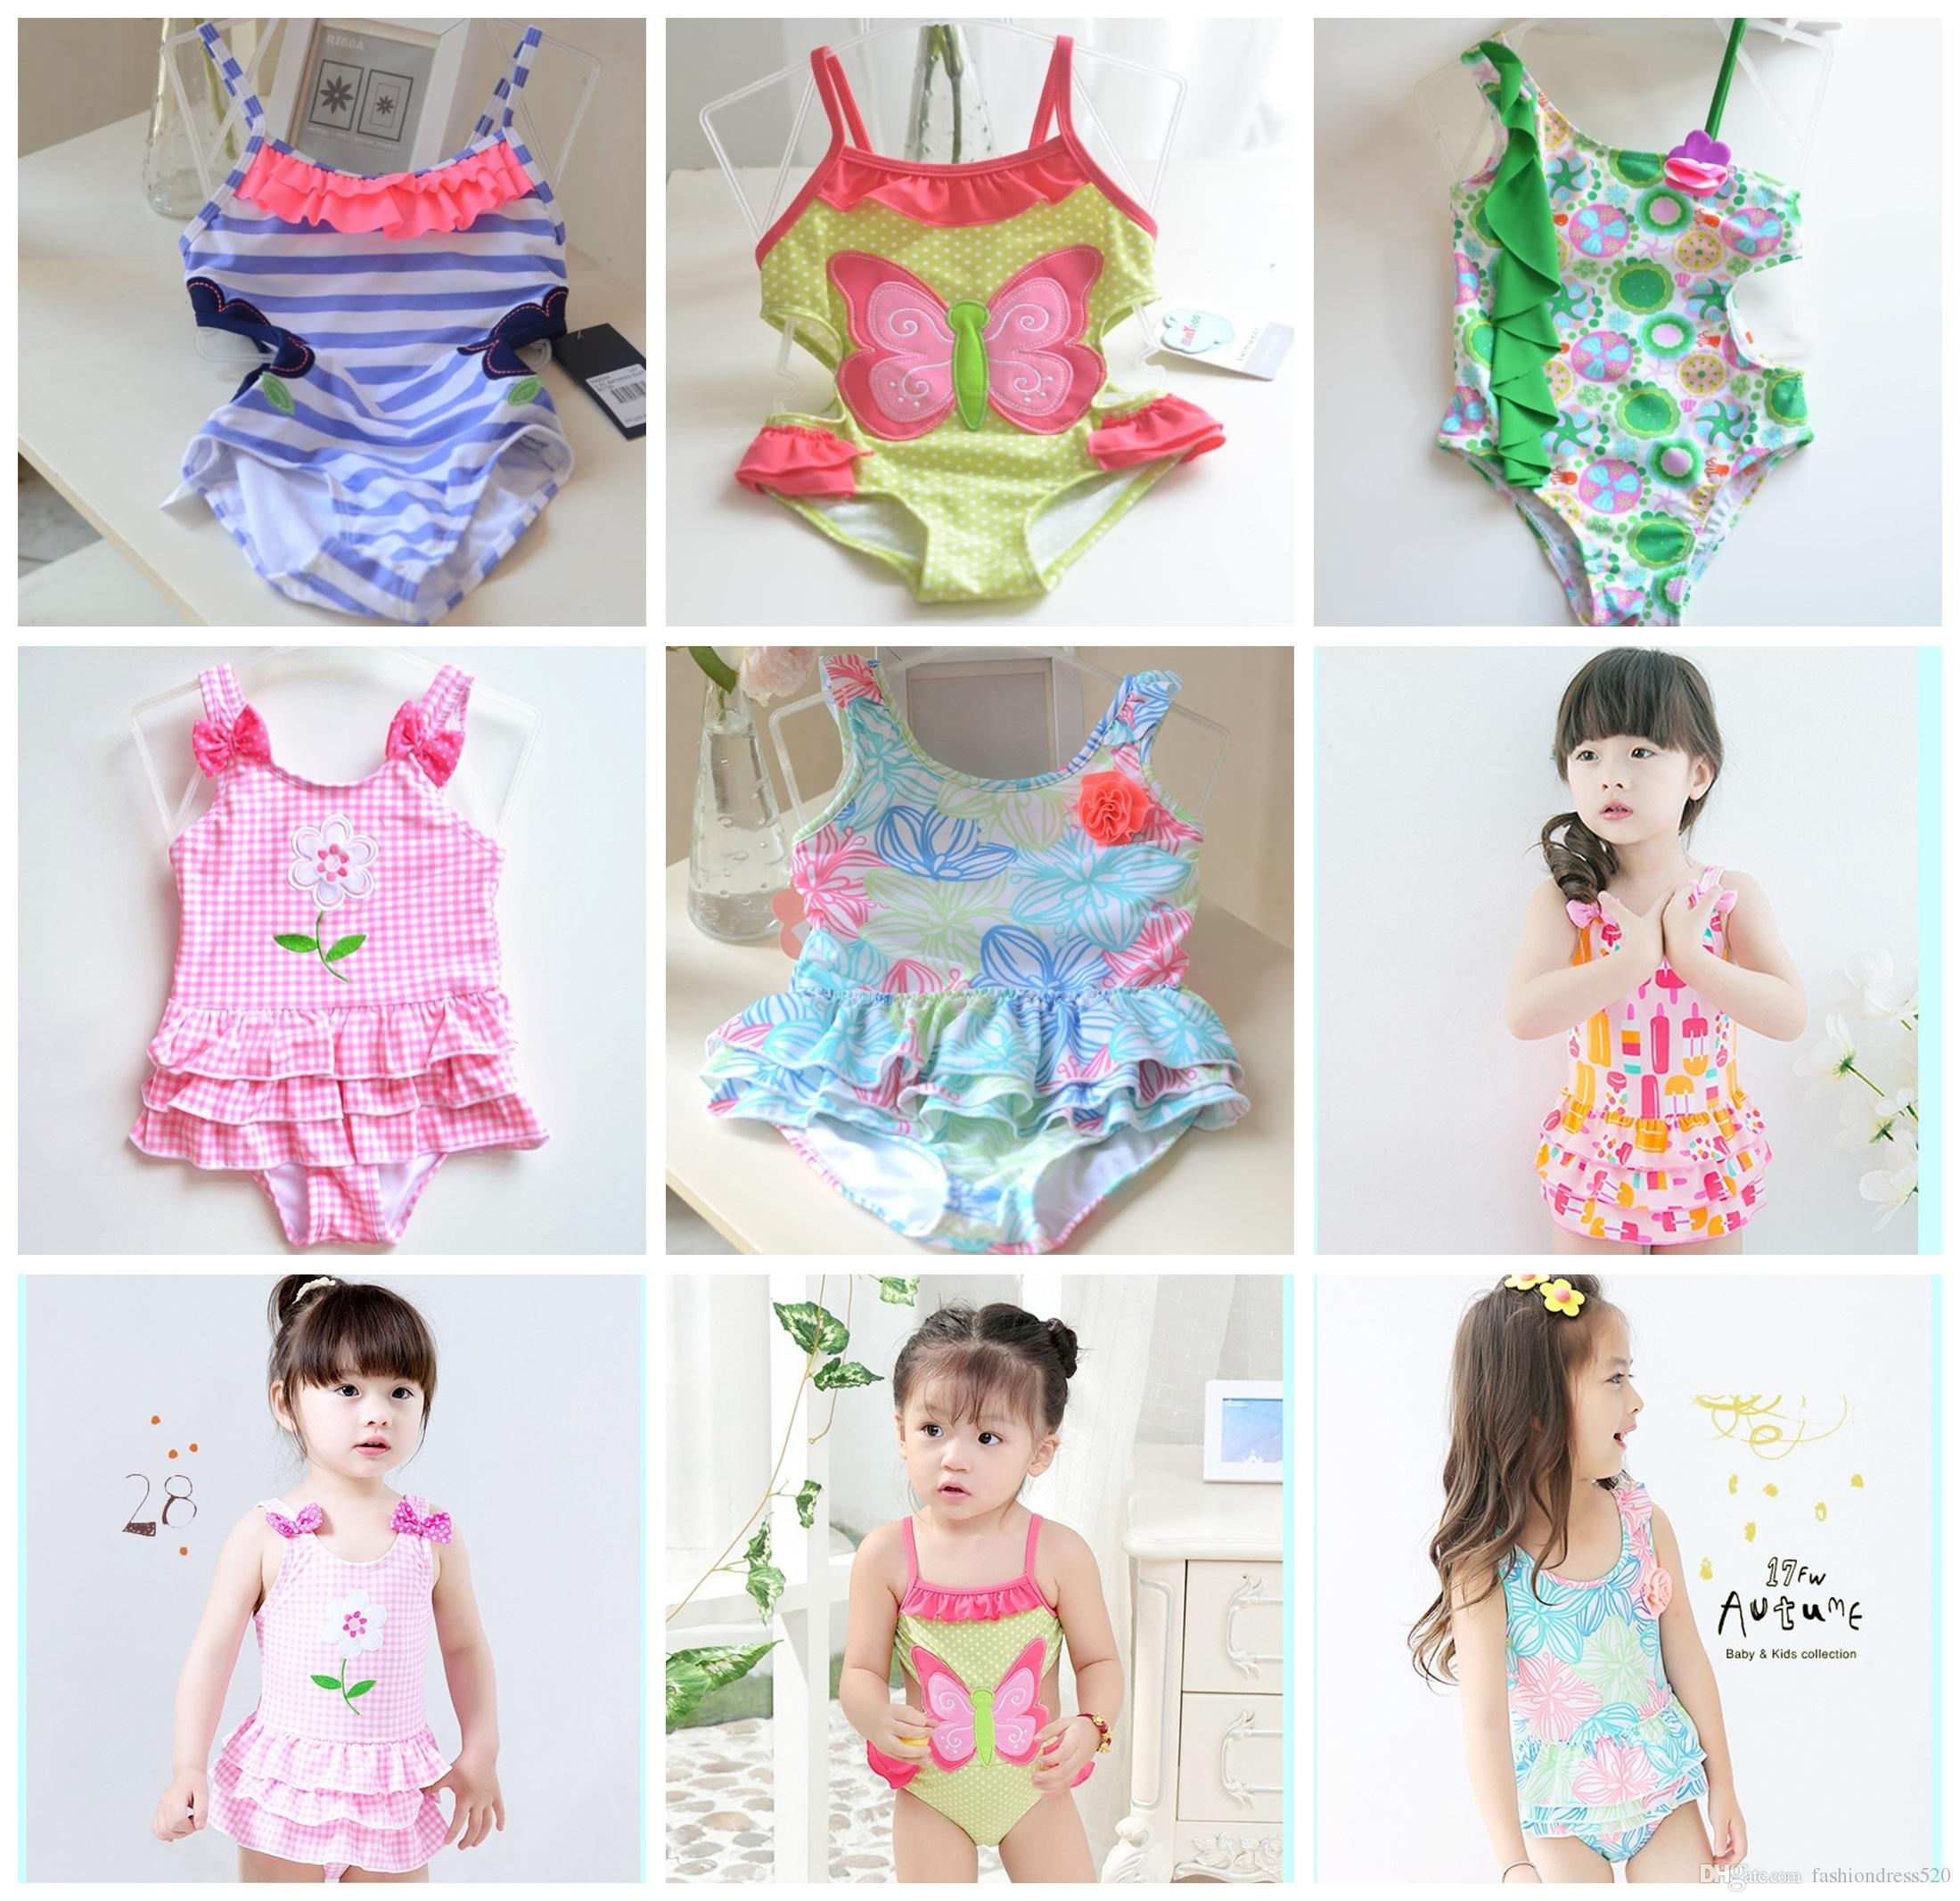 43f6e3b1f1 2019 New Swimsuit Children Cute Baby Girl Swimwear One Piece Beautiful  Printed Pattern 1 12Y Girls Swimsuit Kids Children Swimming Suit Free DHL  From ...